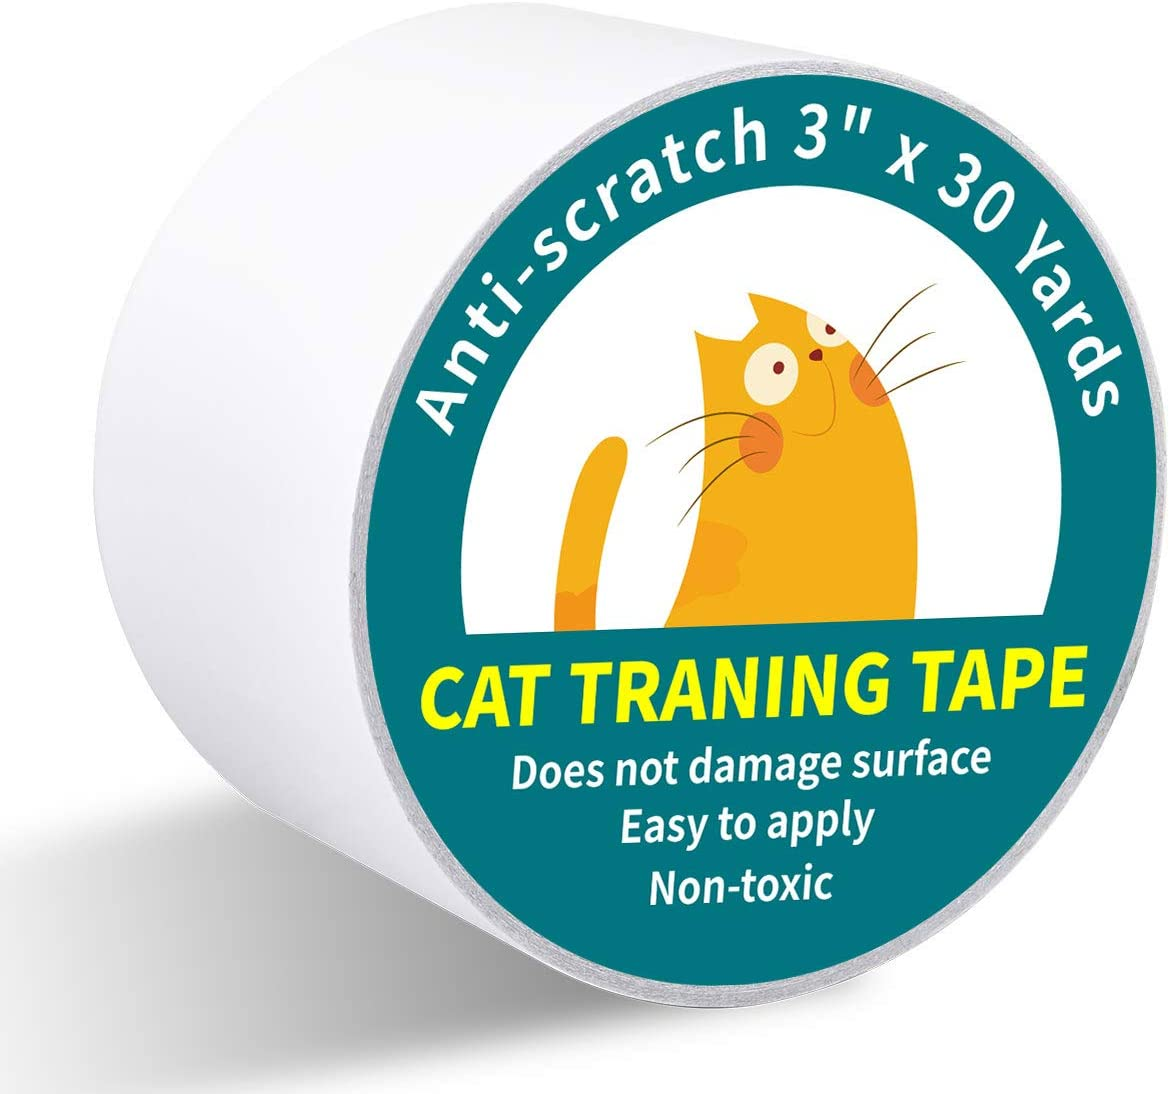 Karaseno Anti Cat Scratch Tape, 3 inches x 30 Yards Cat Training Tape, 100% Transparent Clear Double Sided Cat Scratch Deterrent Tape, Furniture Protector for Couch, Carpet, Doors, Pet & Kid Safe